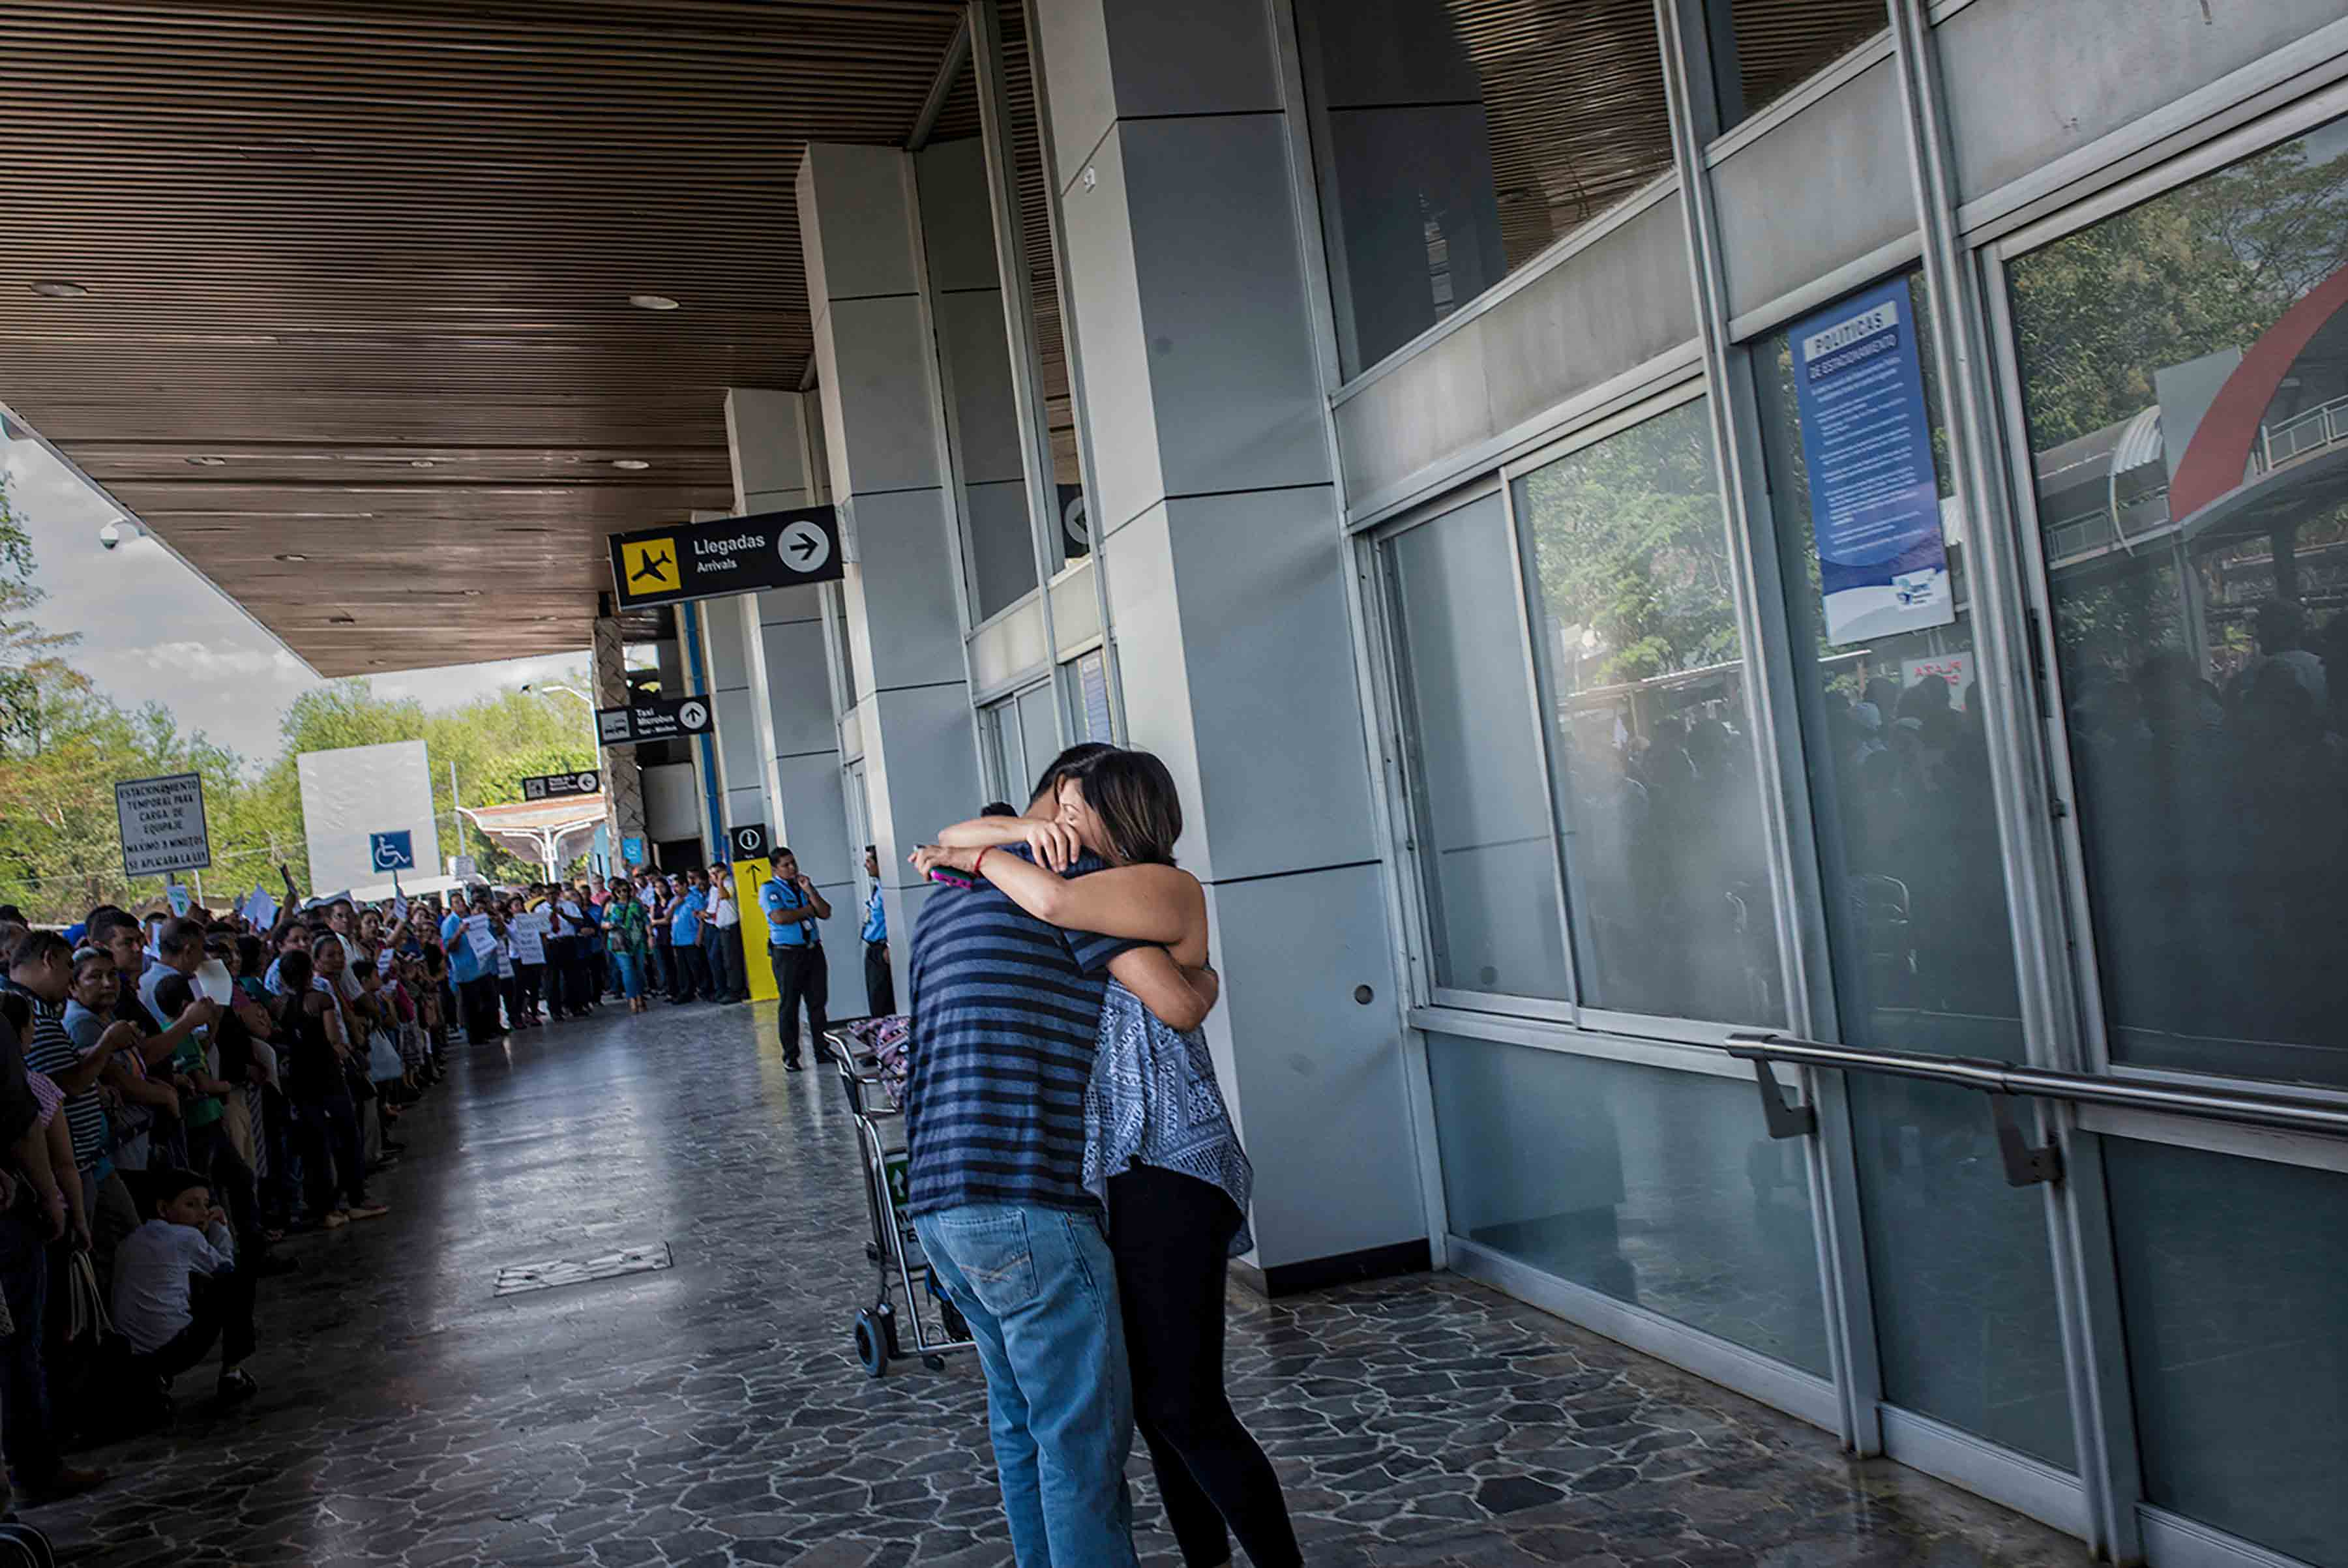 Jose Escobar hugs his wife in El Salvador for the first time since his March deportation from Texas.